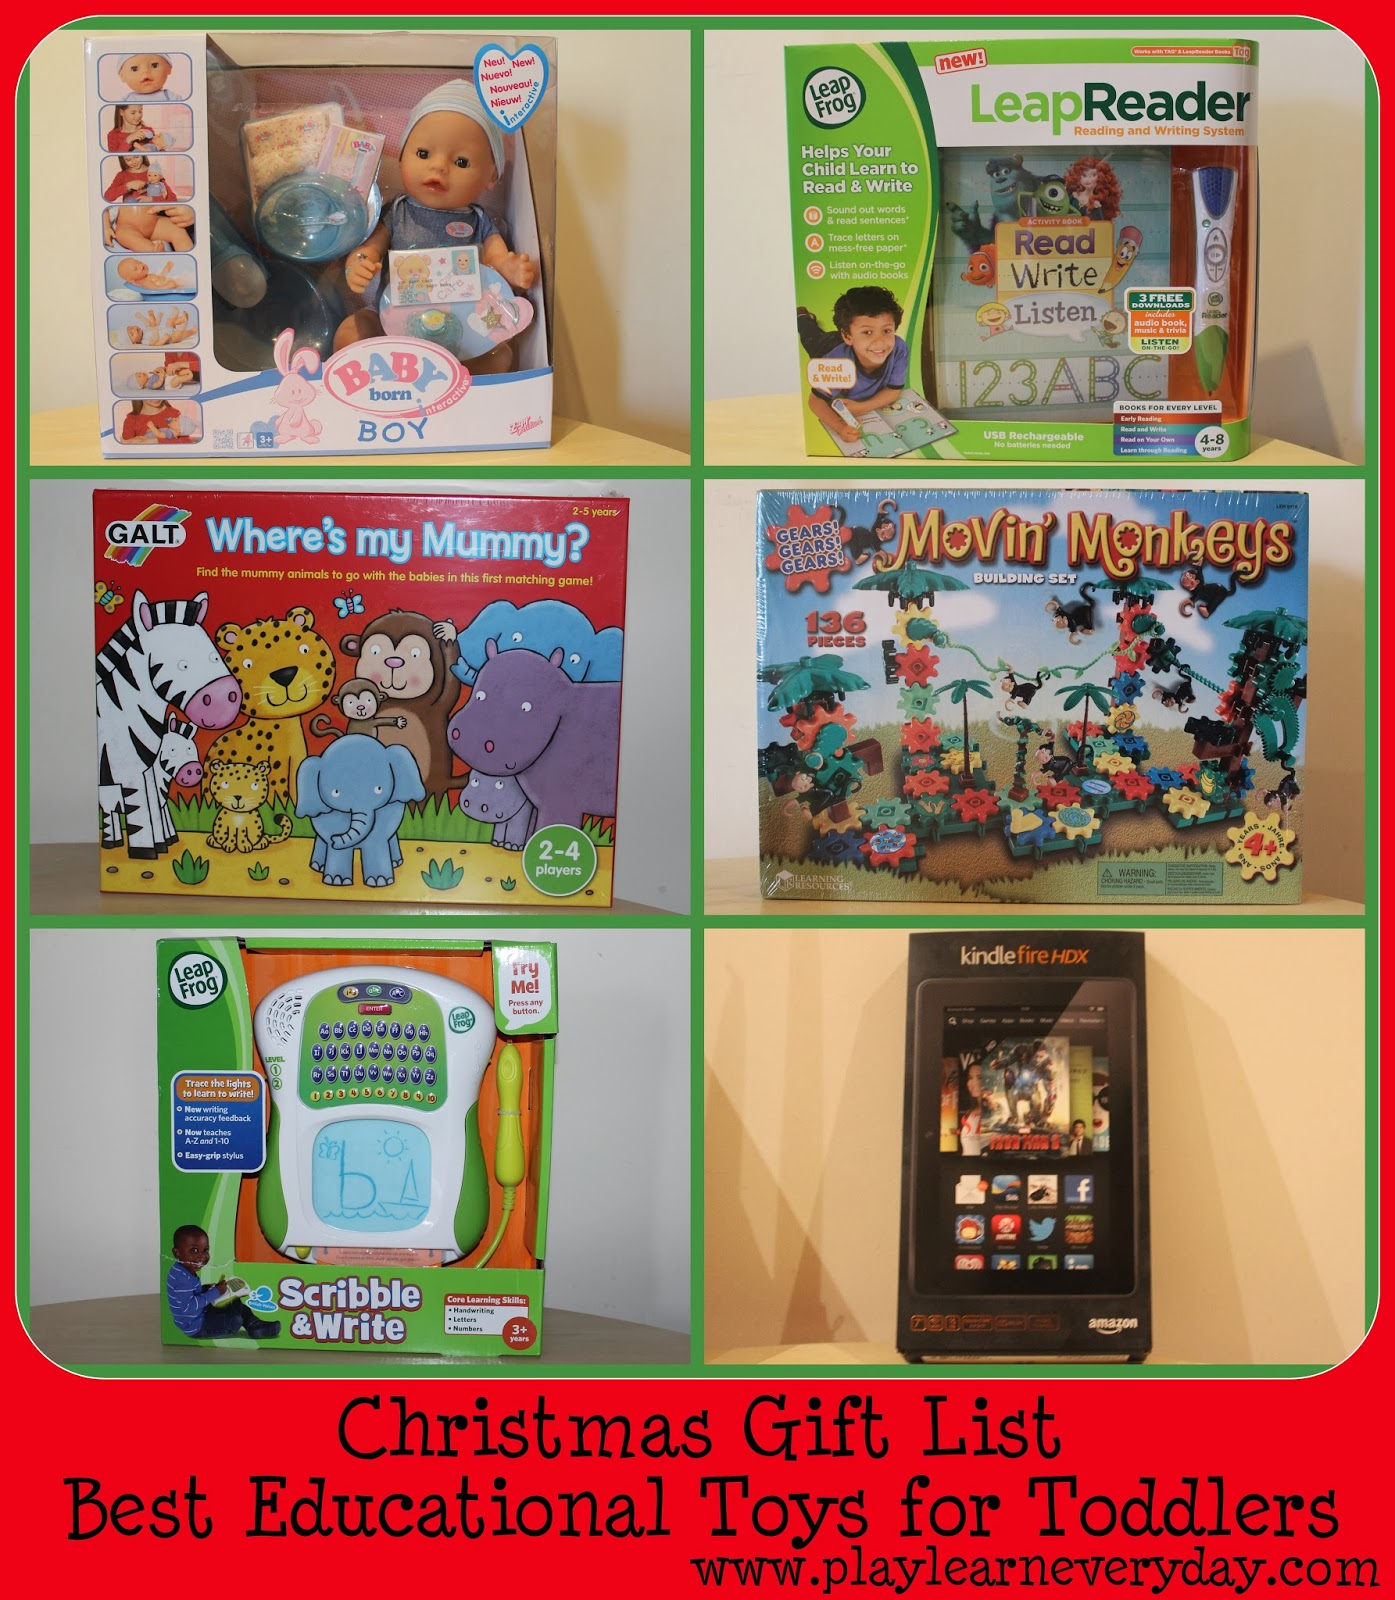 Educational Toys For Toddlers 2 4 : Christmas gift list best educational toys for toddlers